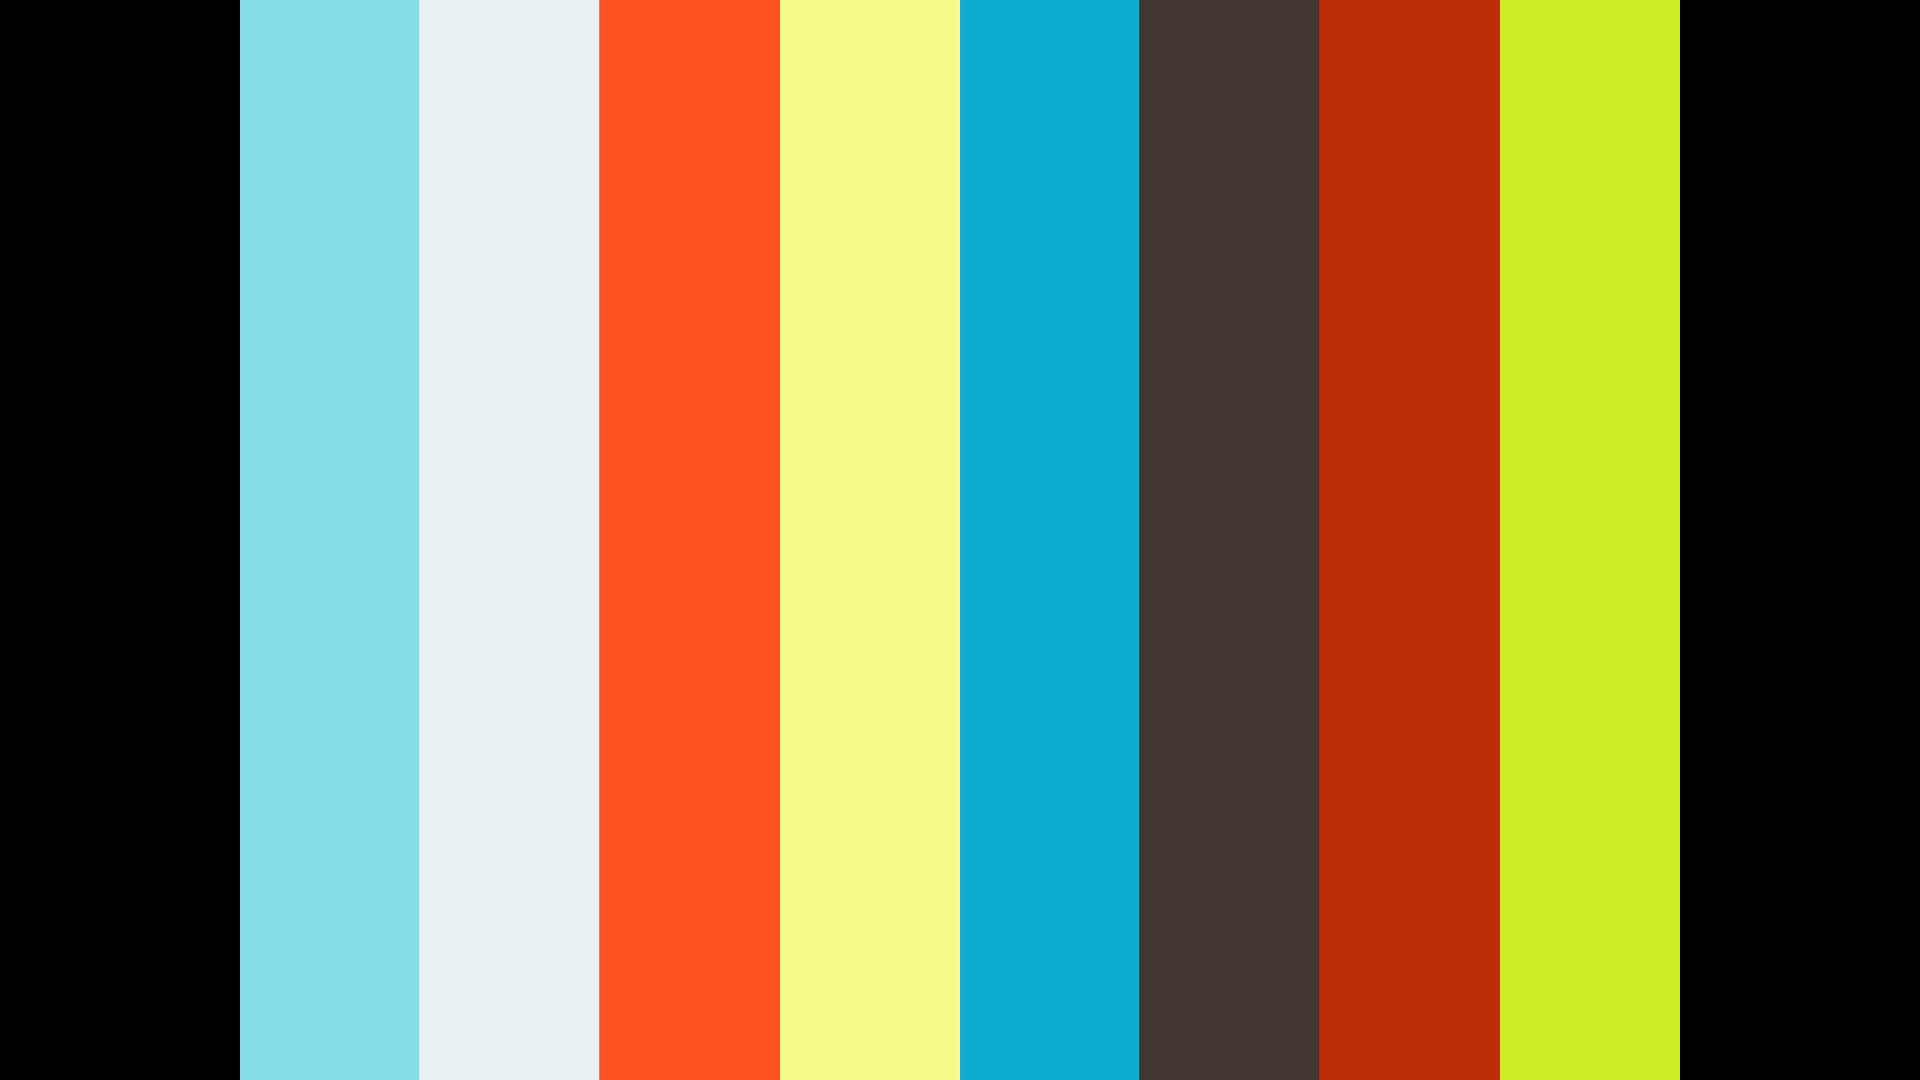 Arjun Kapoor along with Kriti Sanon spotted promoting their film Panipat at sun and sand juhump4